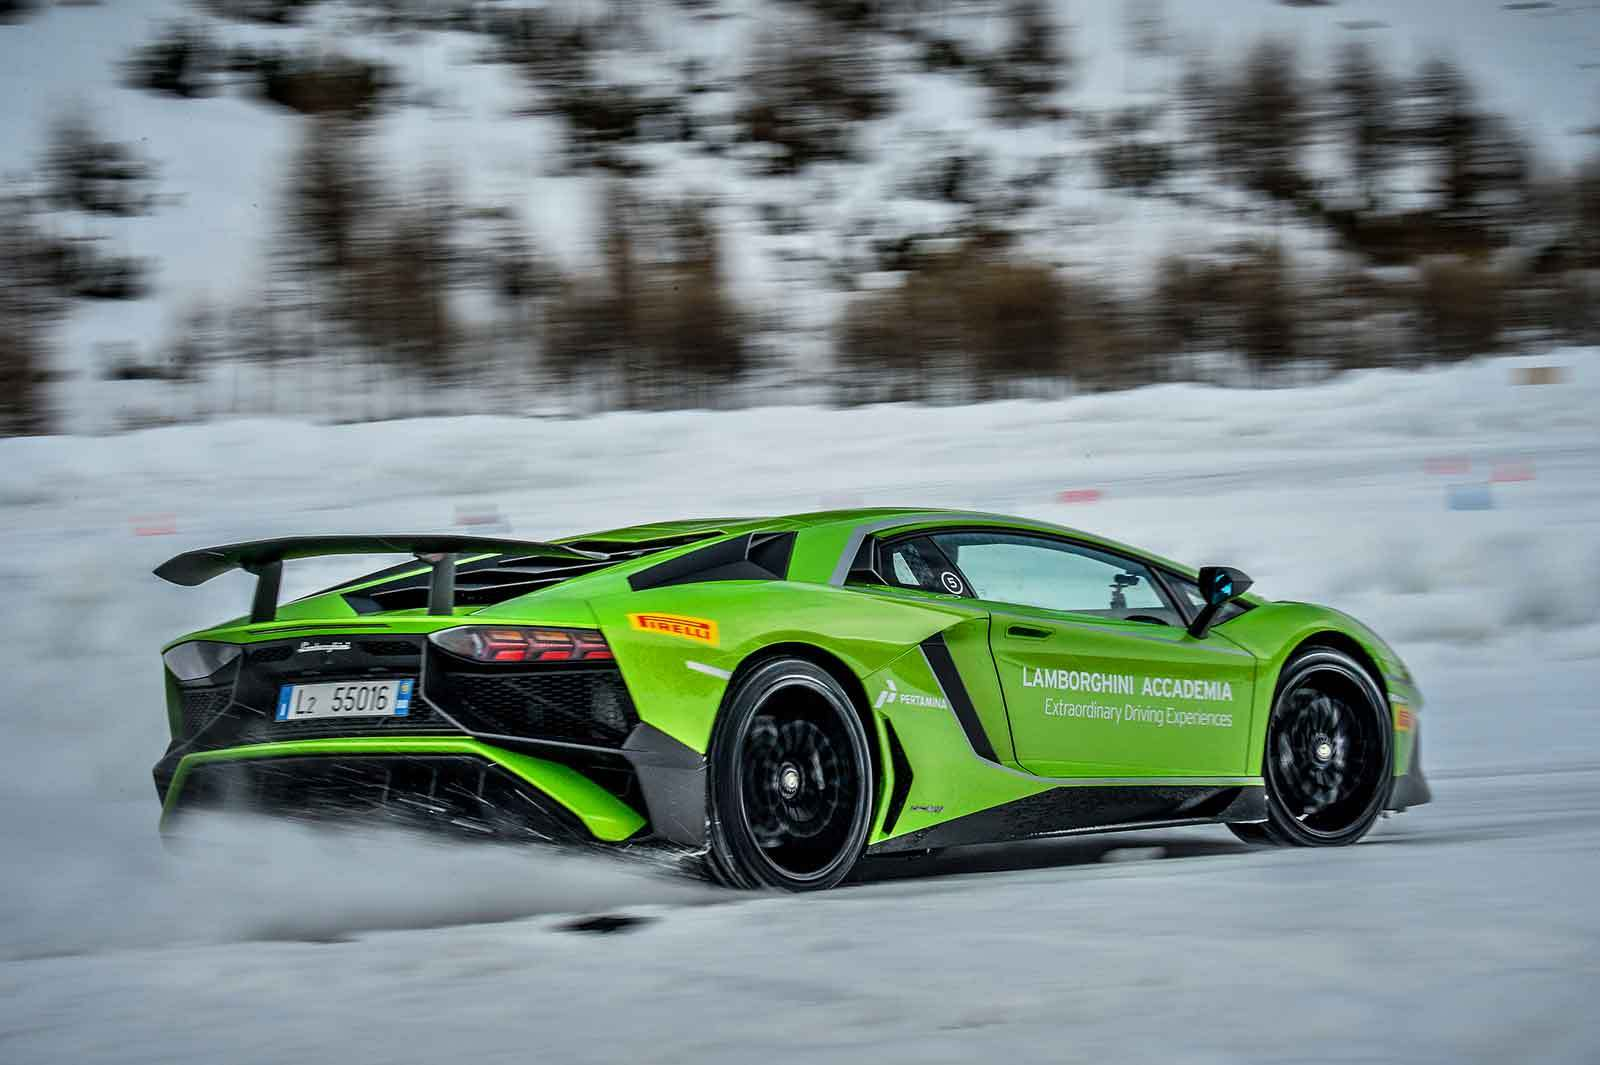 Driving the Lamborghini Aventador SV in the snow